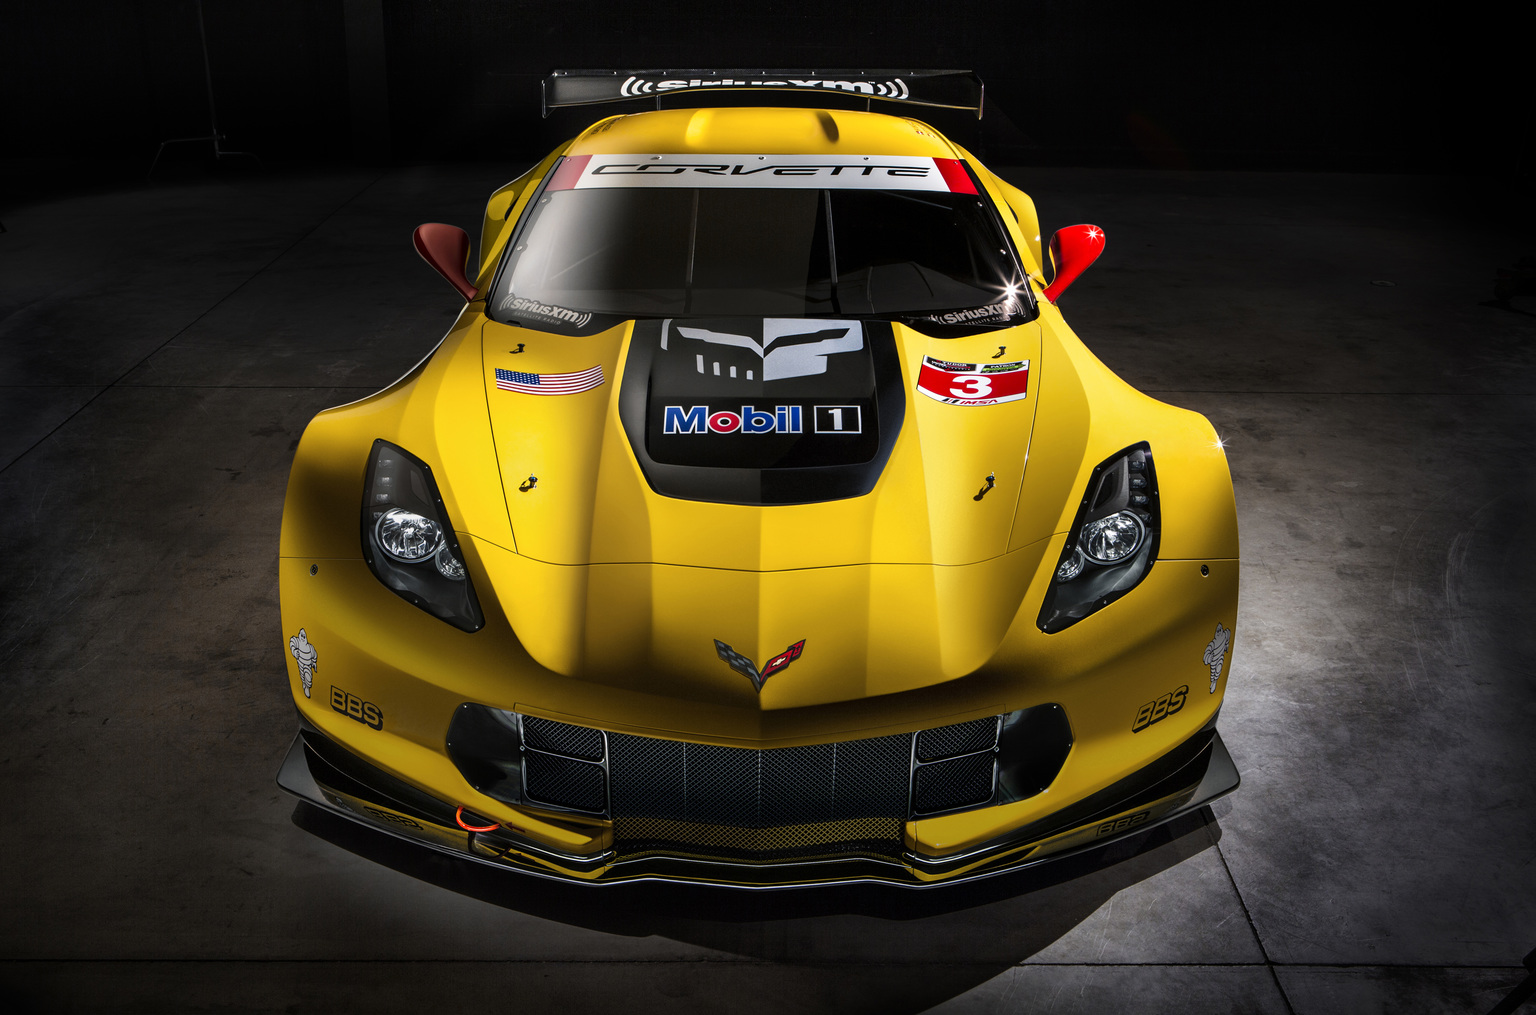 2014 Chevrolet Corvette Stingray C7.R